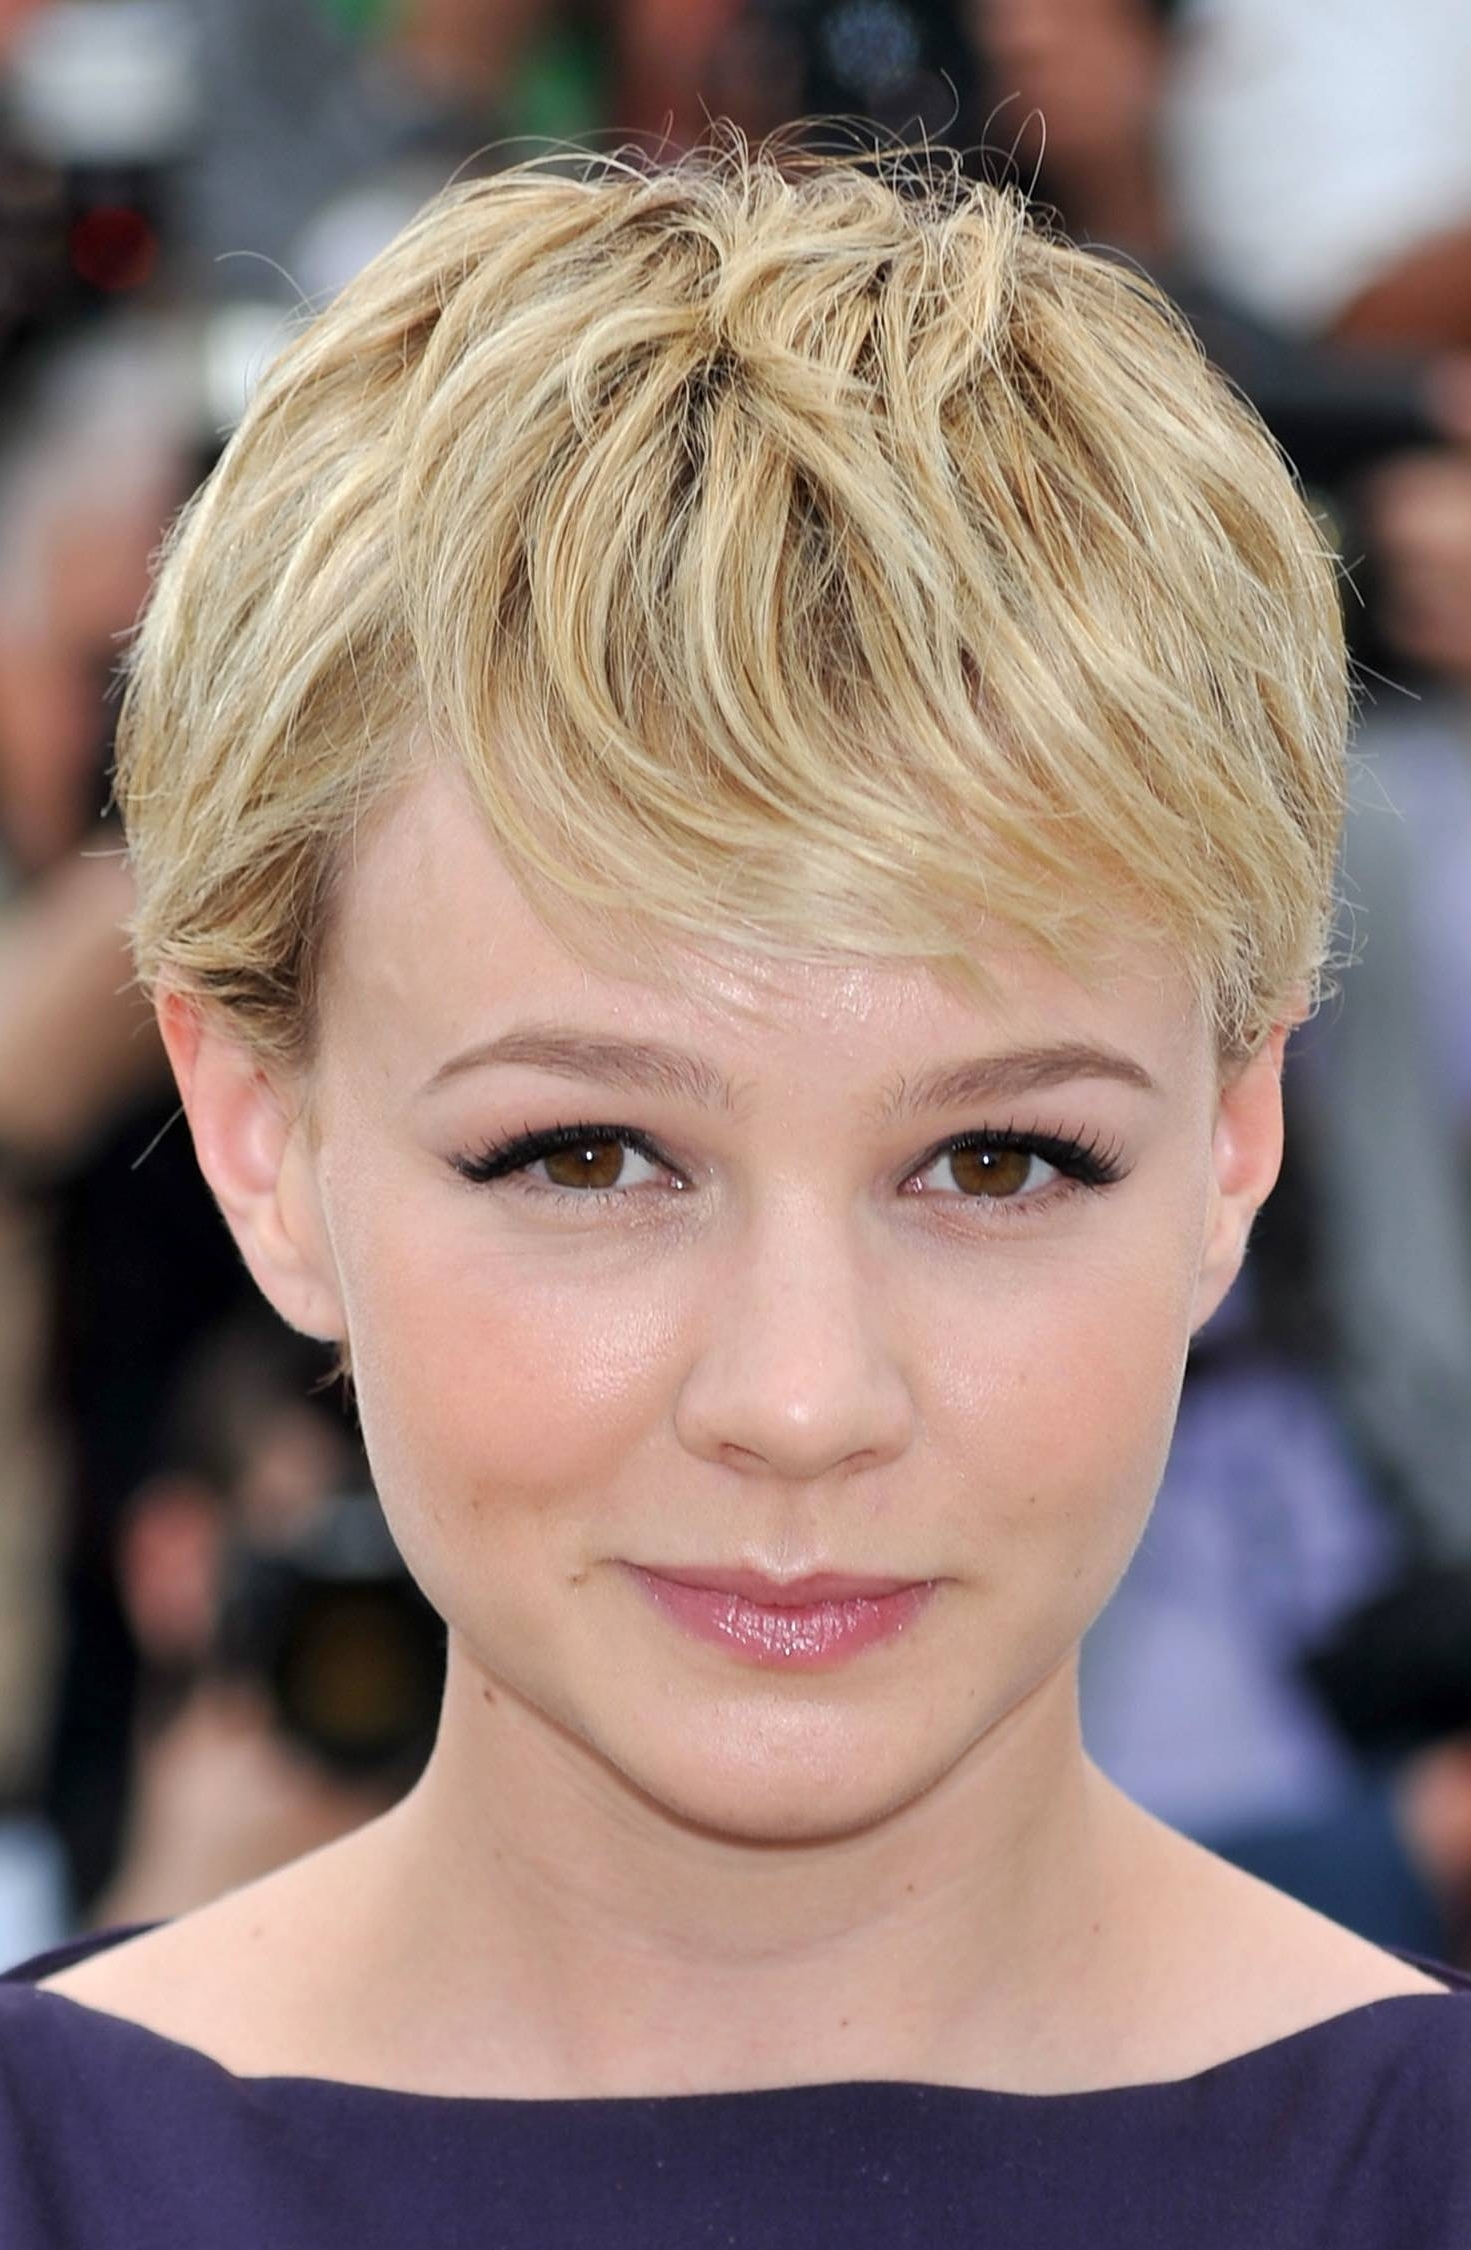 15 Pixie Hairstyles For Thin Hair (View 11 of 15)